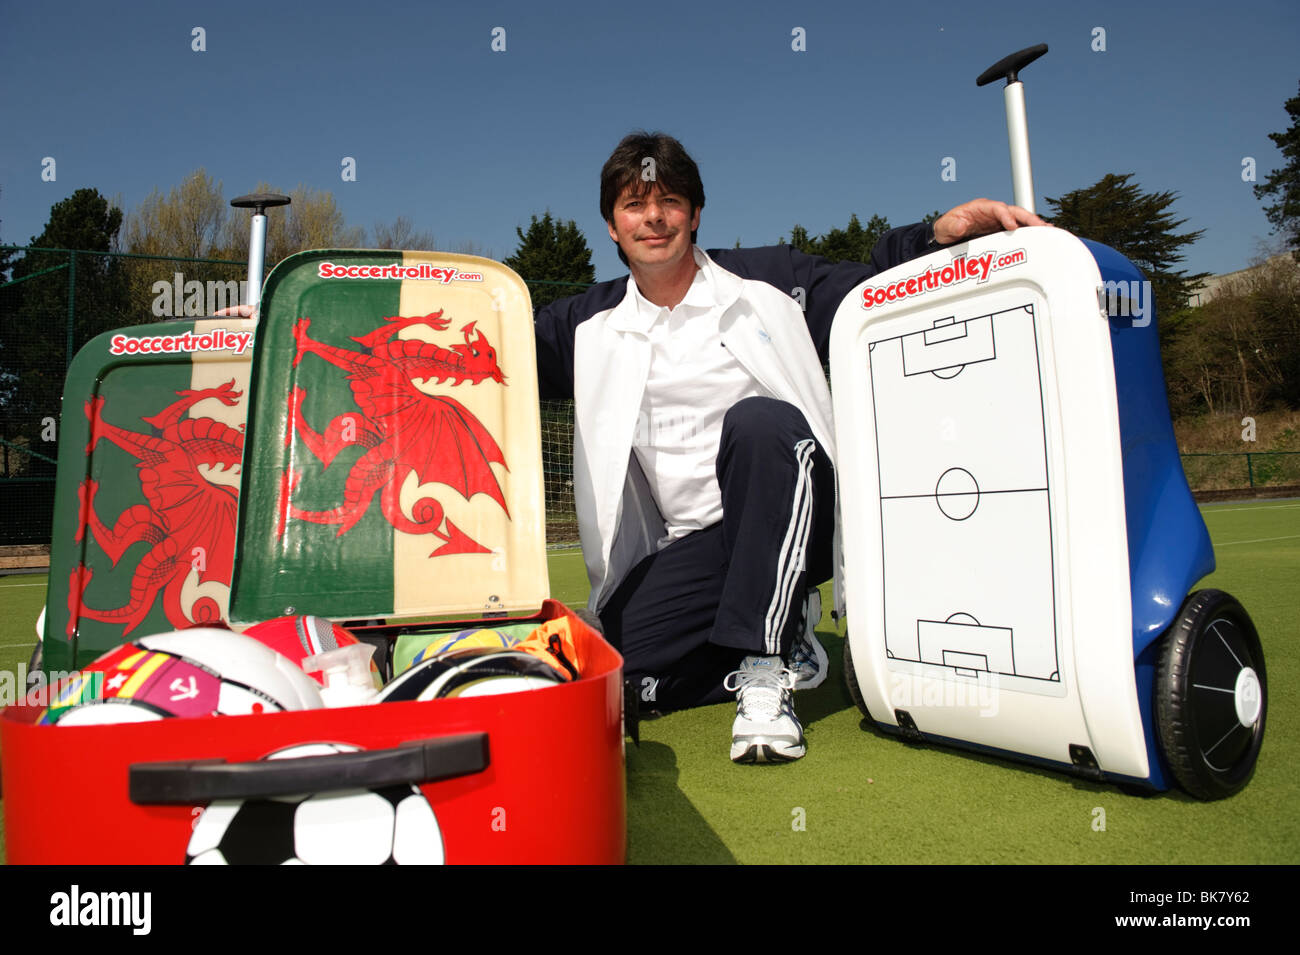 Former professional footballer Lee Jenkins with his innovative SoccerTrolley, designed to hold 6 footballs, Wales - Stock Image